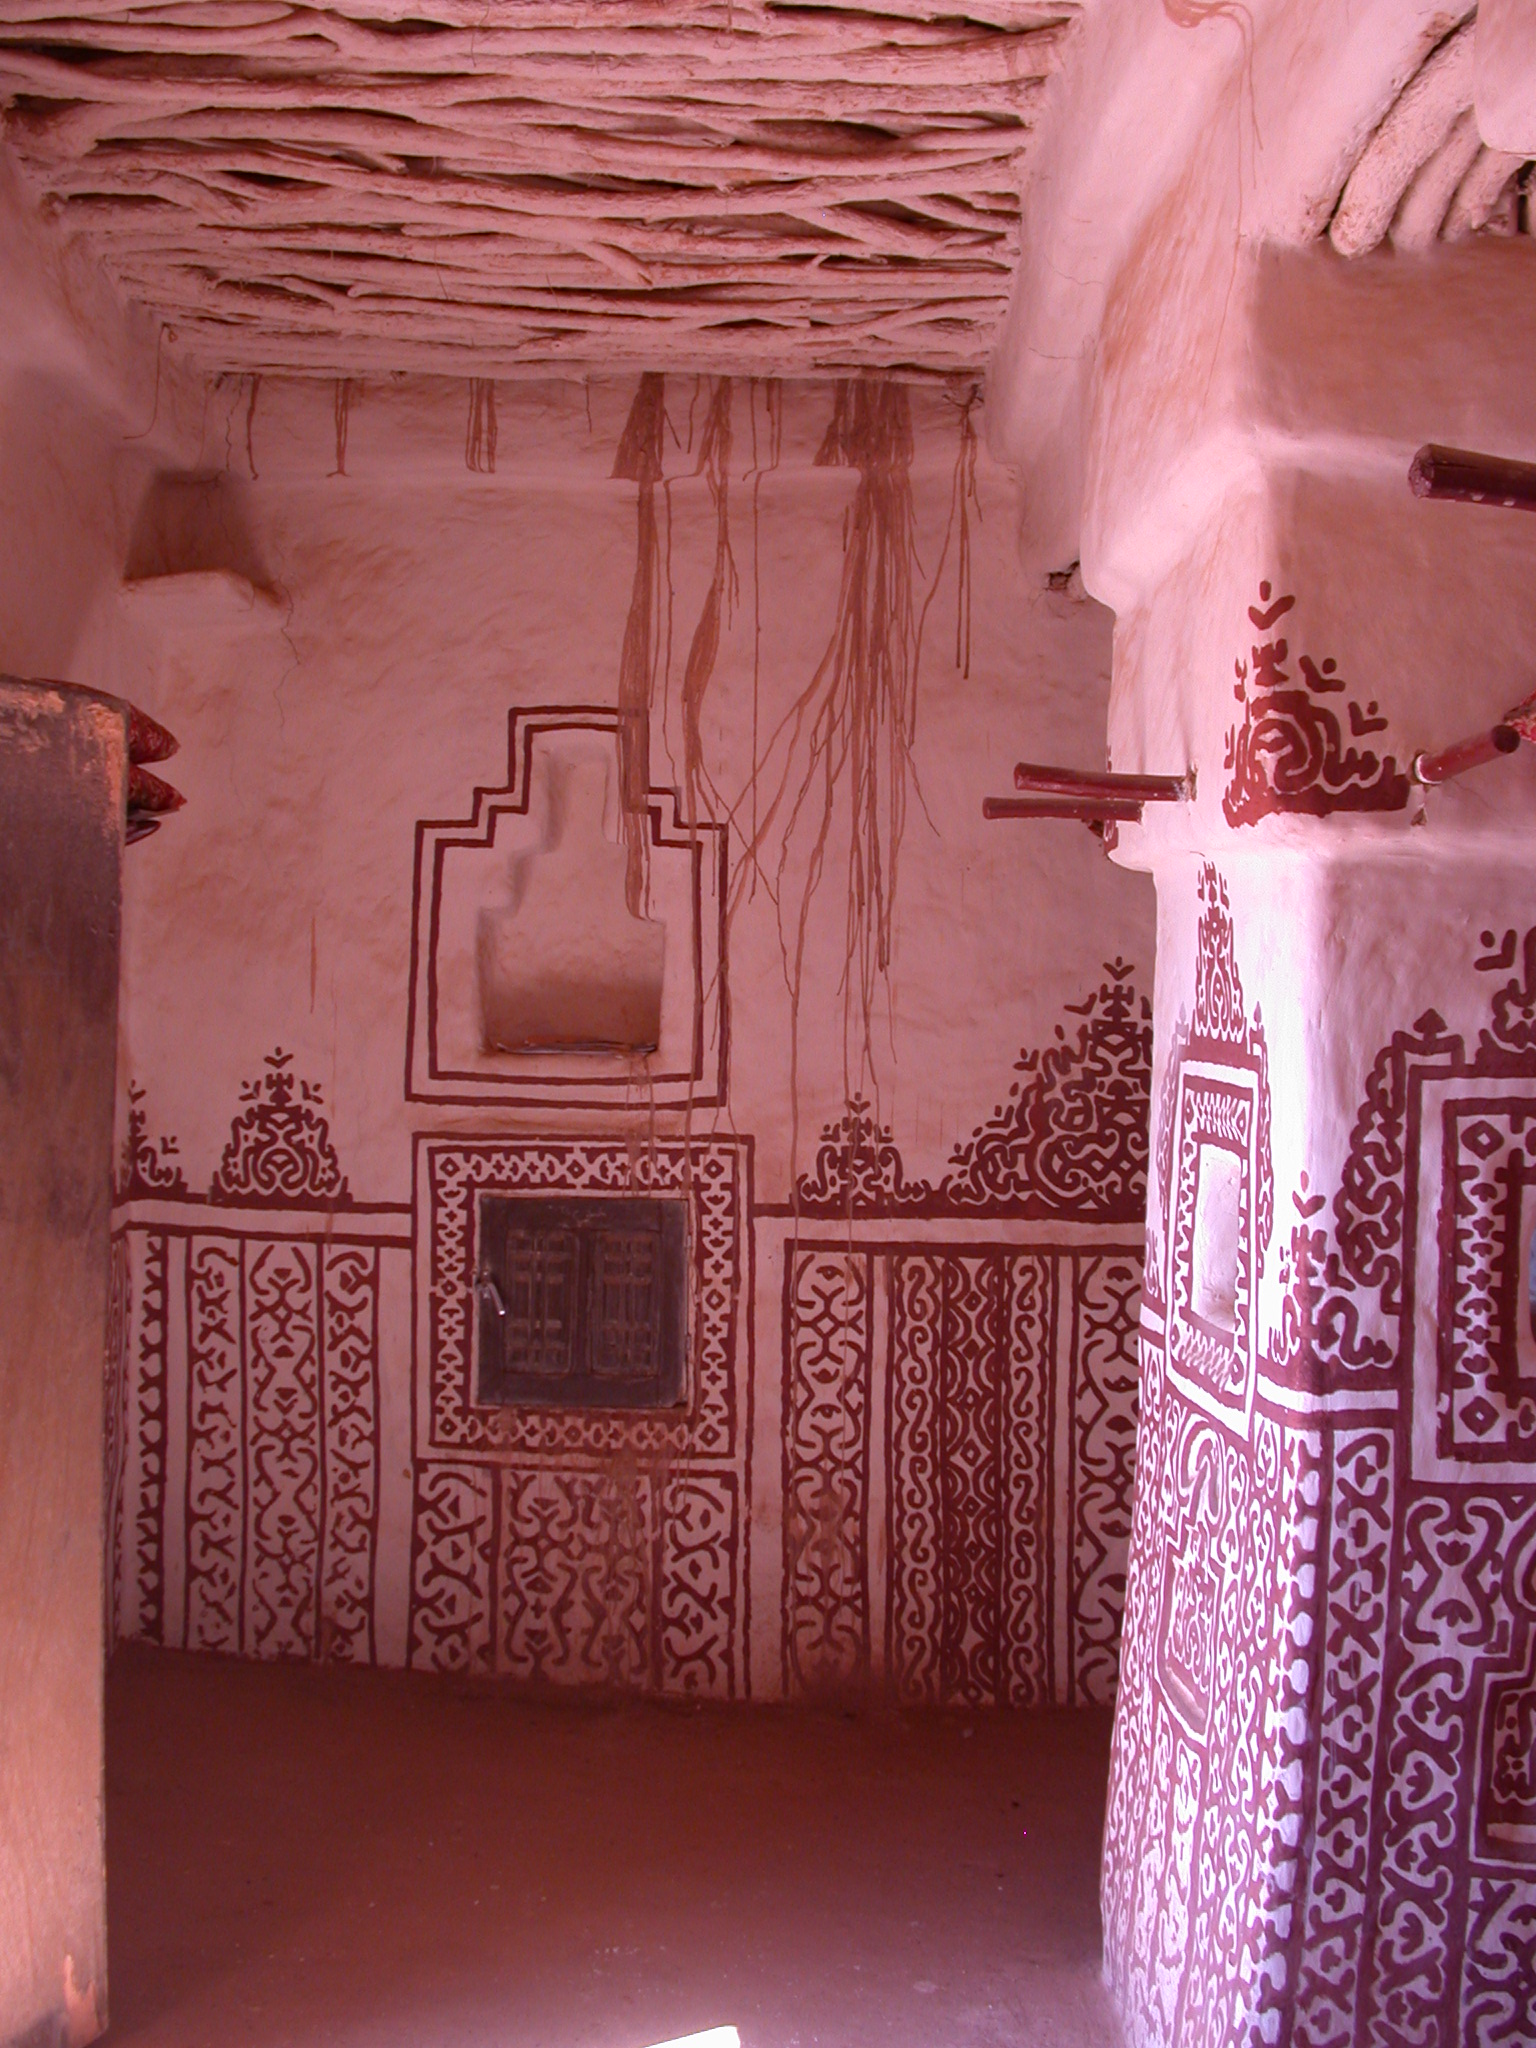 Interior of Library in Ancient City of Oulata, Mauritania